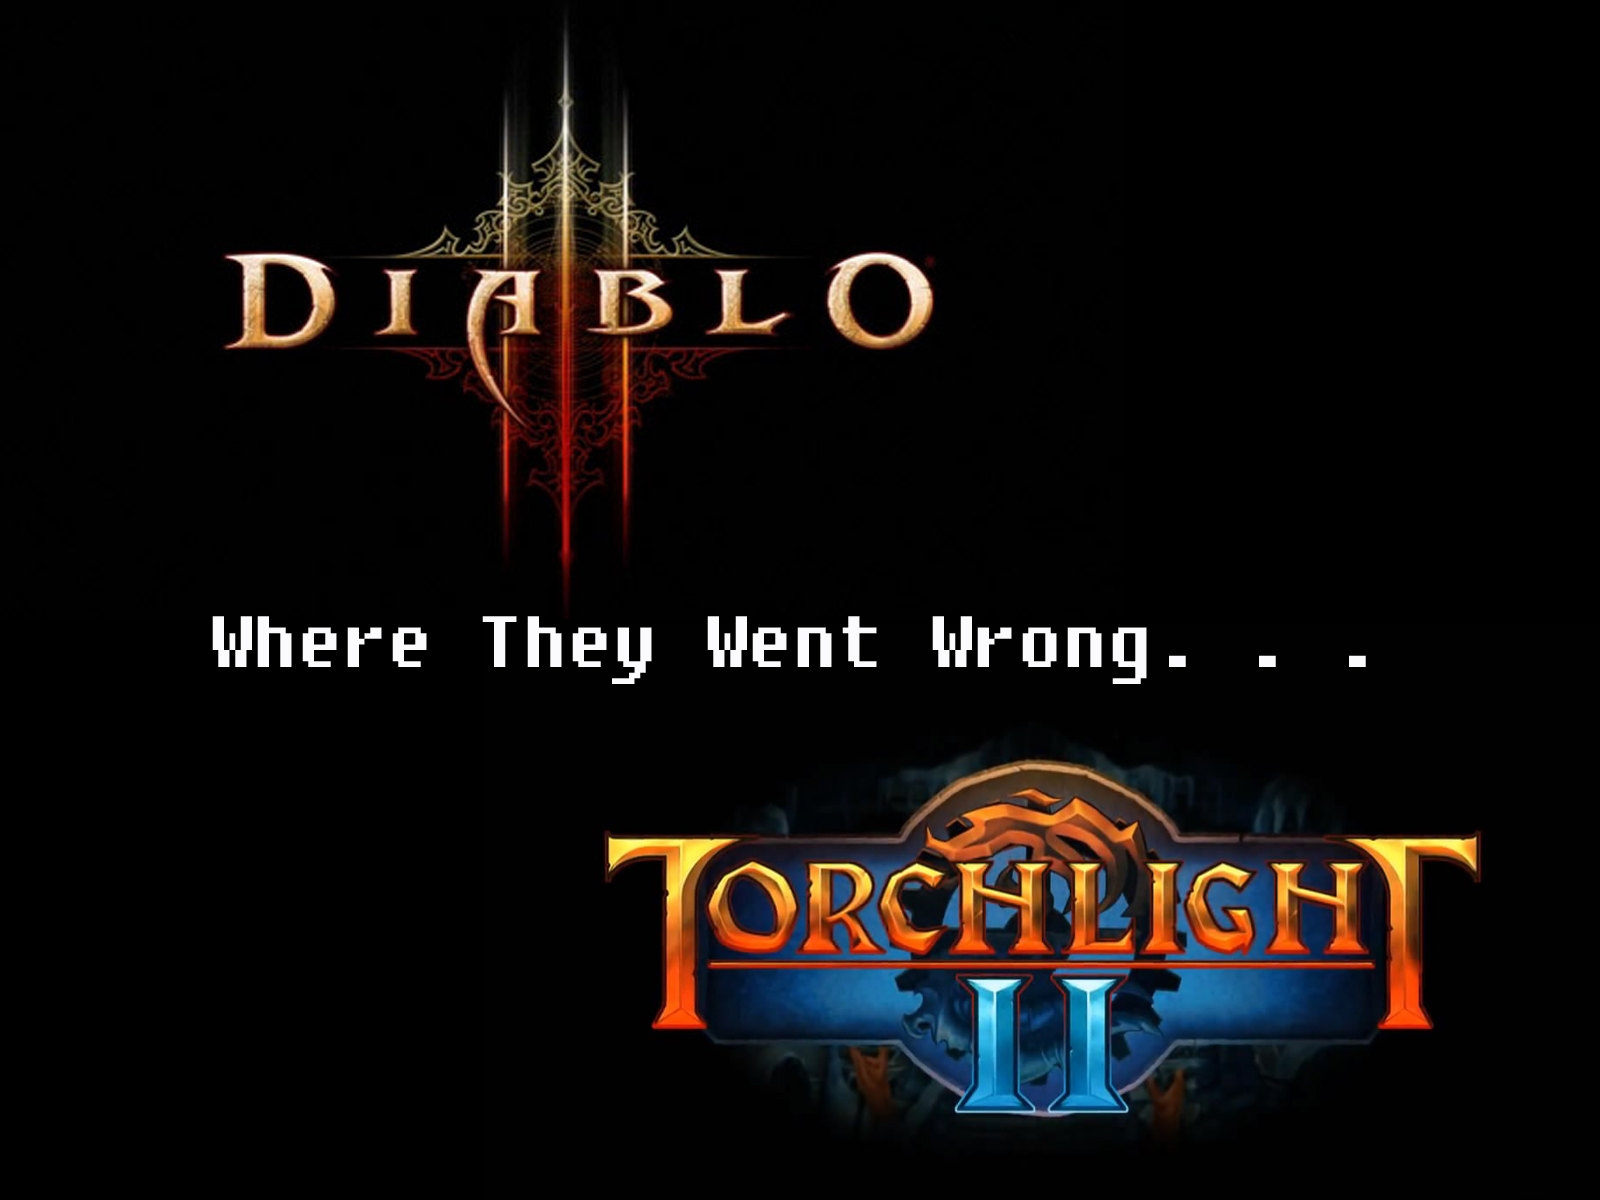 Diablo 3 and Torchlight 2 logos